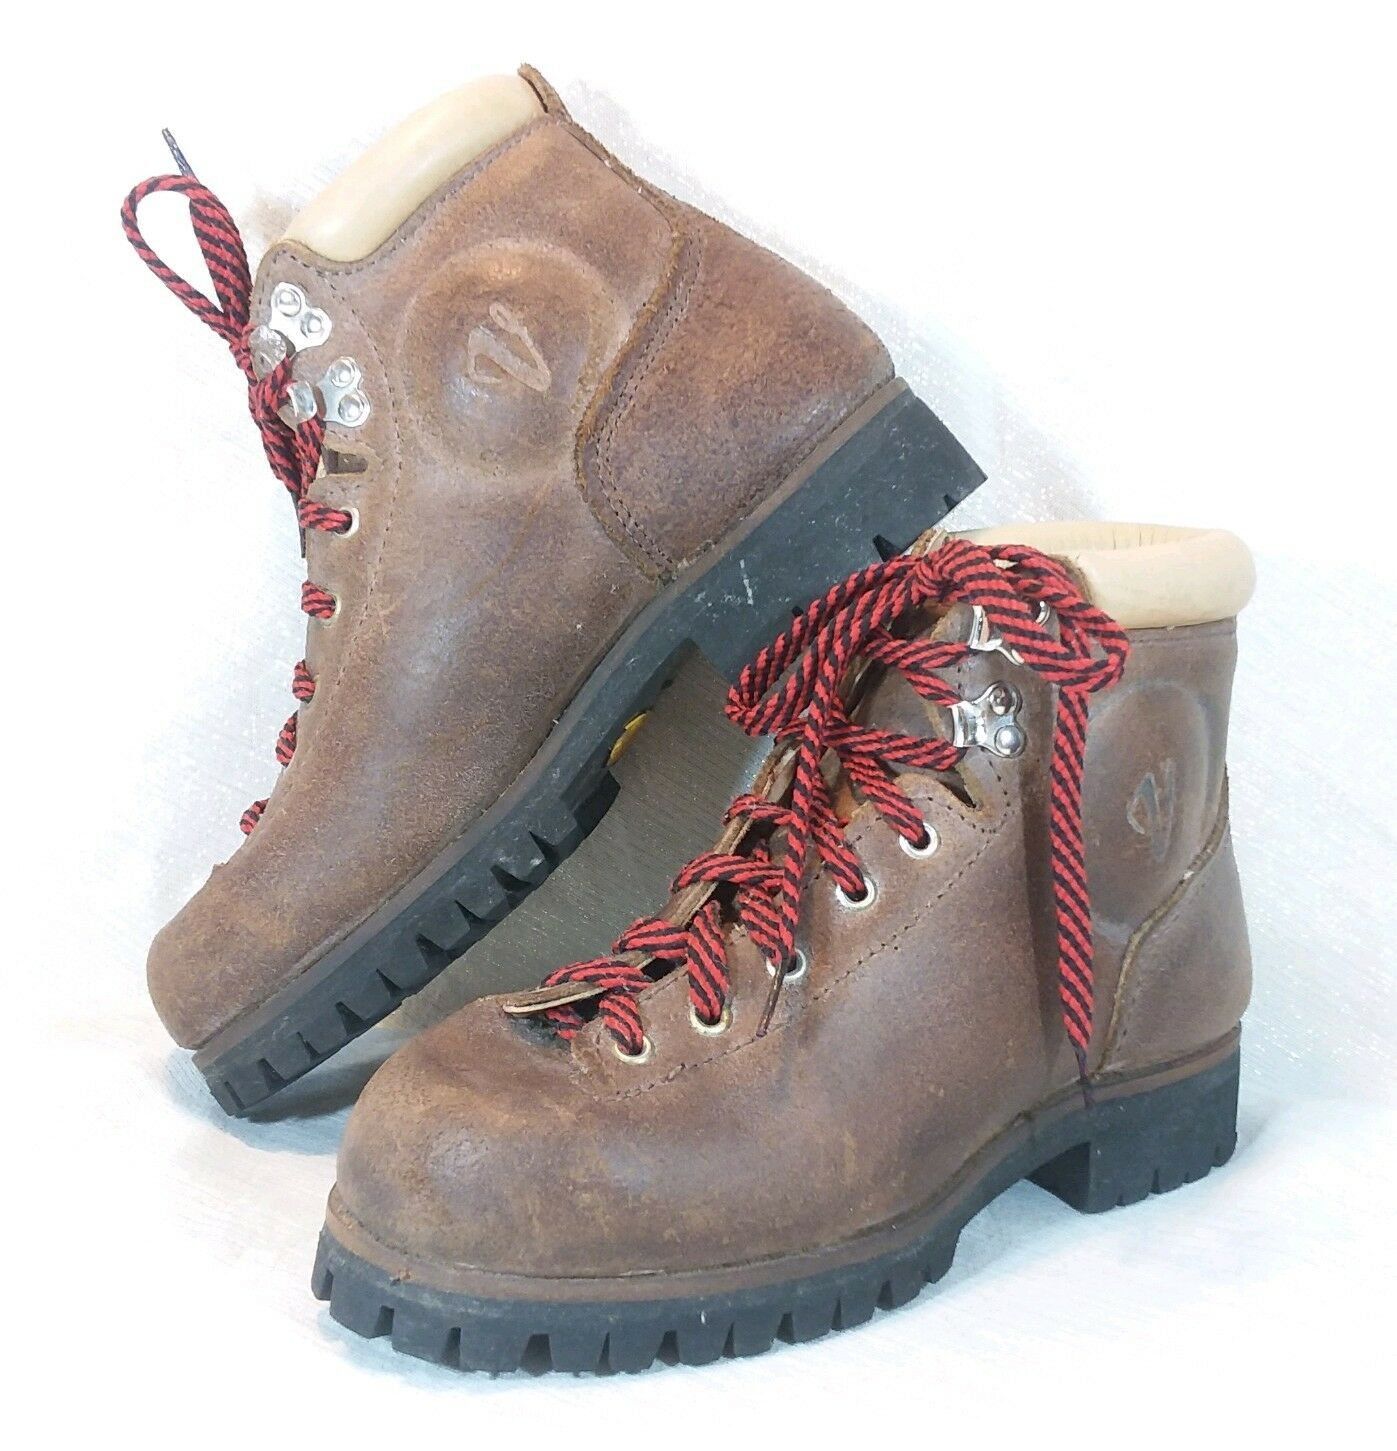 Vintage Vasque Cowhide Hiking Mountaineering Boots Vibram Sole  Womens 7 A   quality product